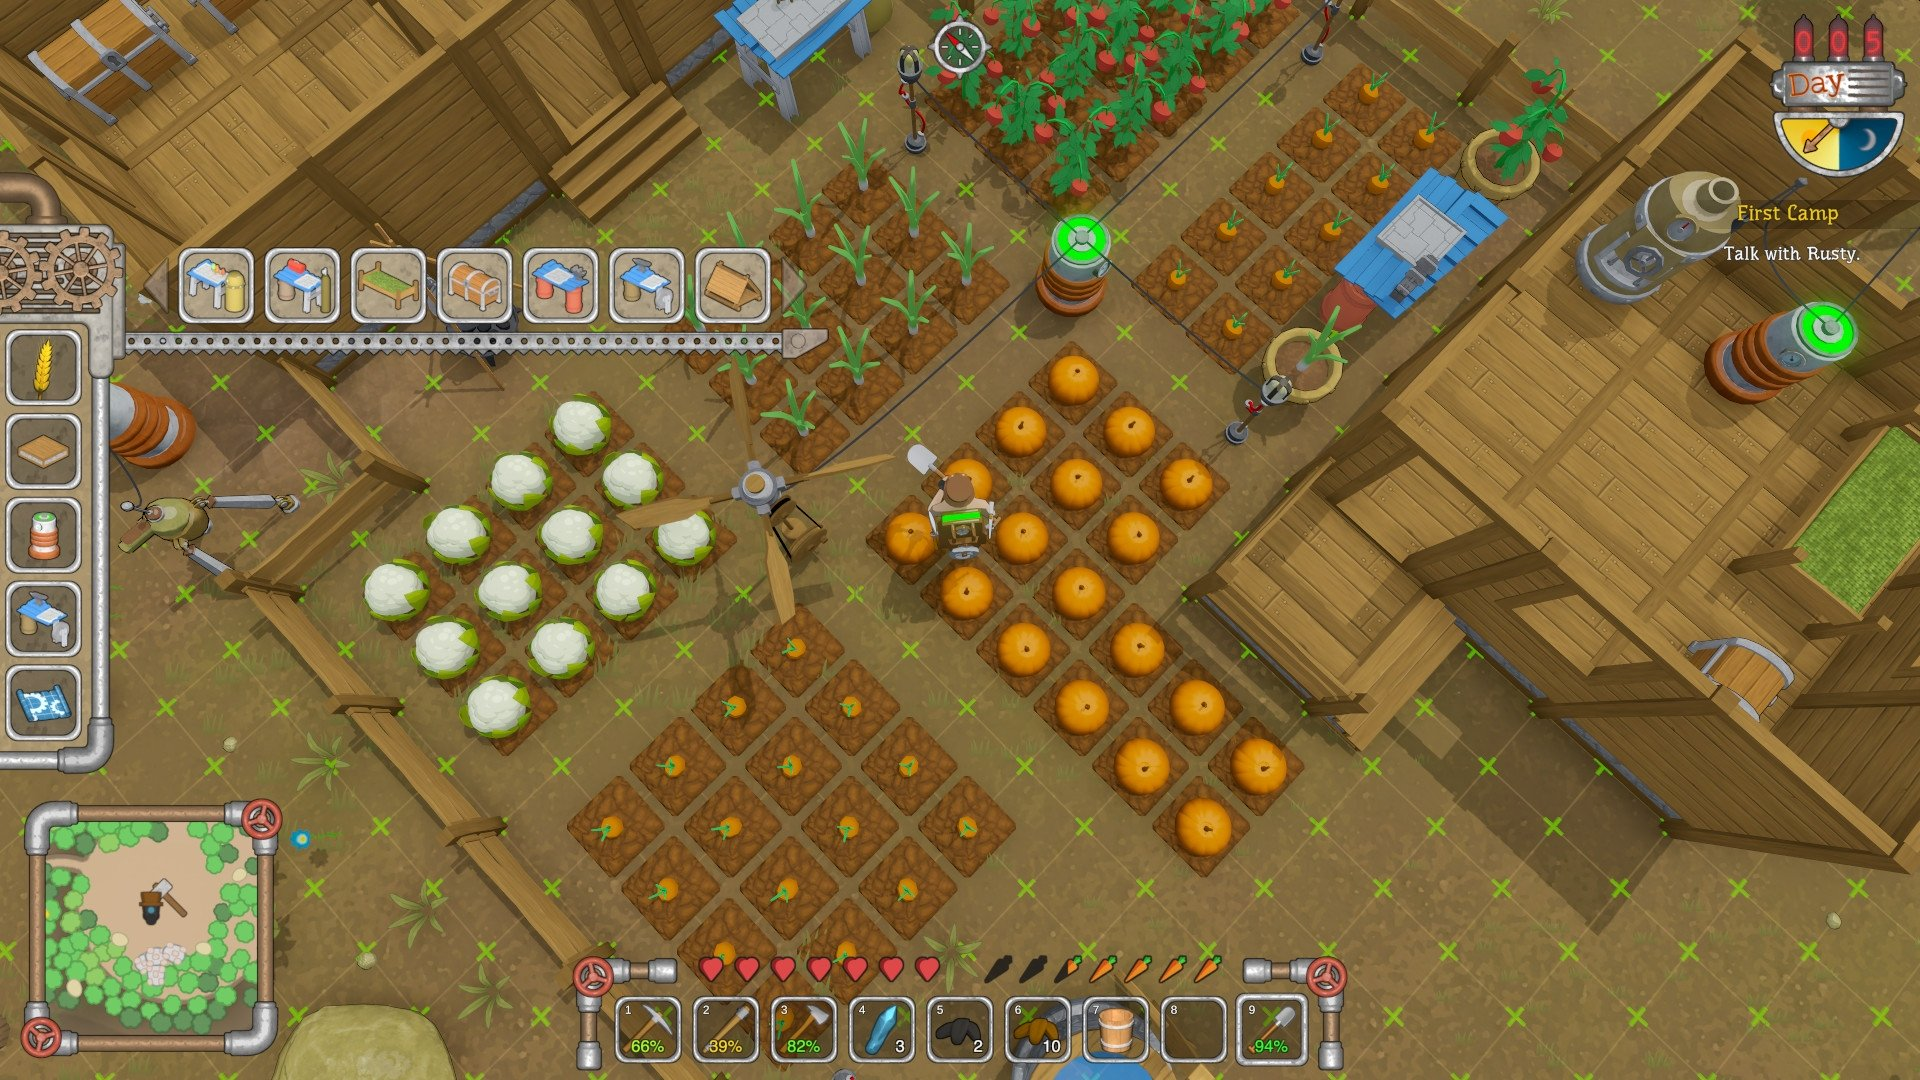 Scrapnaut Is An Upcoming Steampunk Open World Survival Game For PC